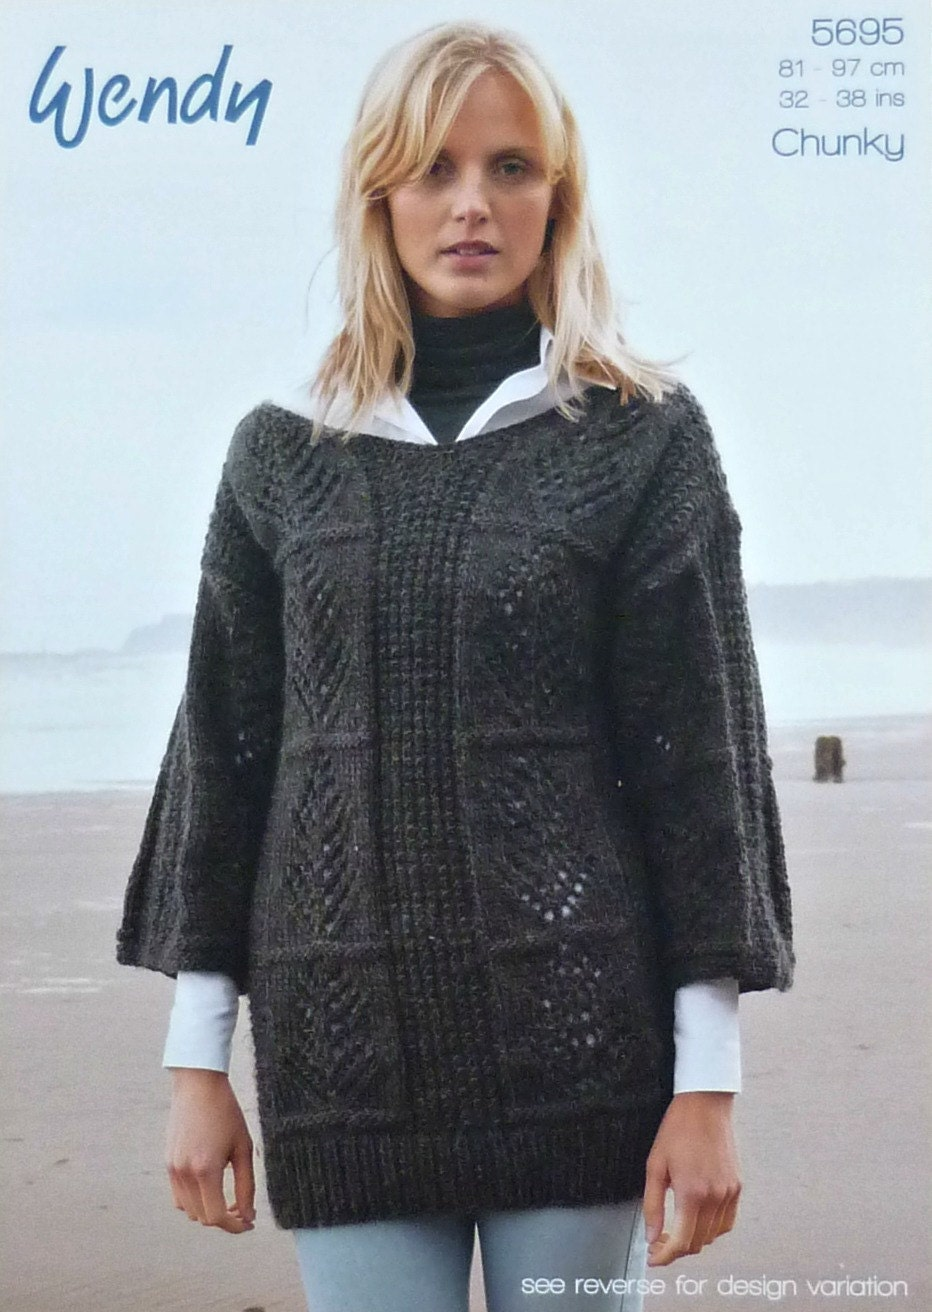 Ladies Tunic Knitting Patterns : Womens Knitting Pattern W5695 Ladies Leaf and Textured Tunic and Jumper Knitt...